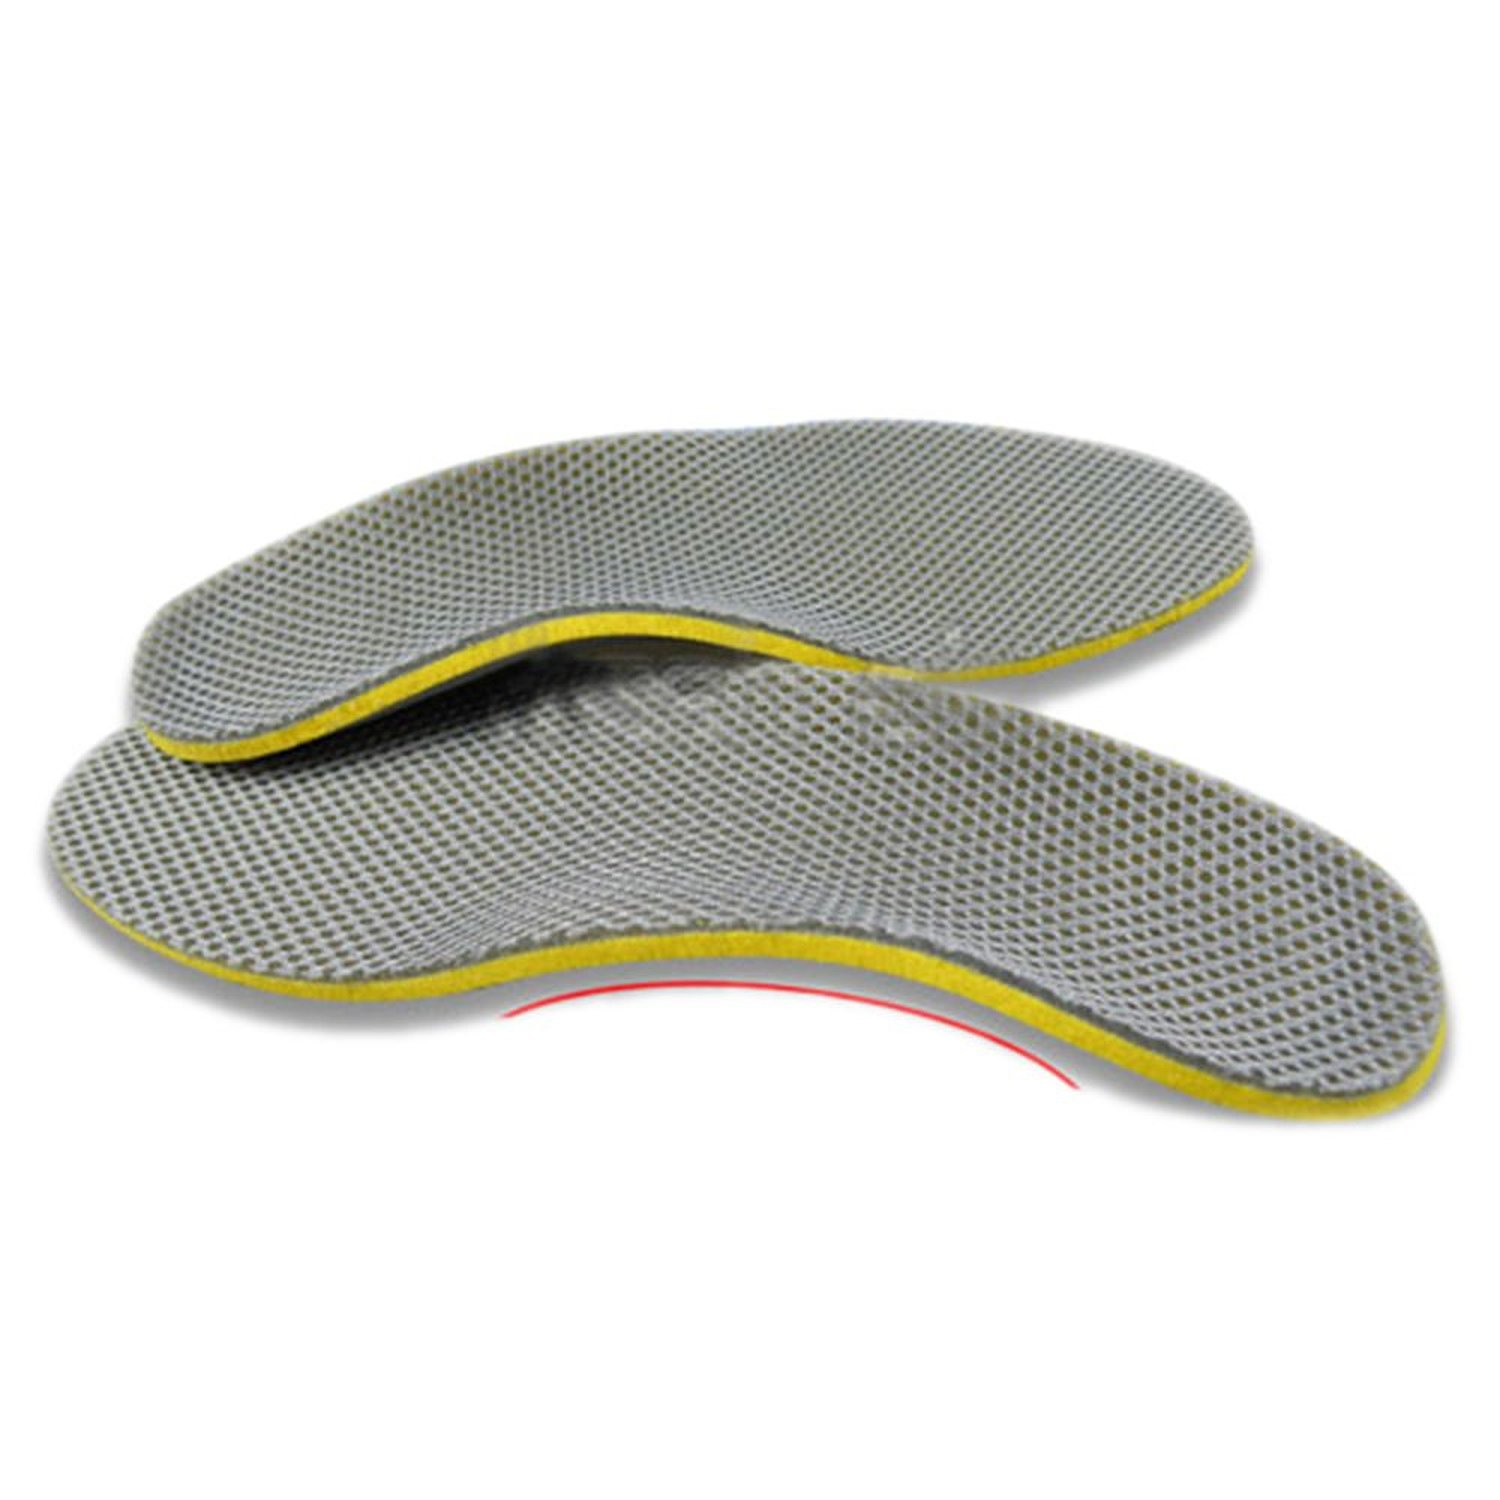 VSEN Hot StyleComfortable Orthotic Shoes Insoles Inserts High Arch Support Pad (S) yellow+Gray(China (Mainland))